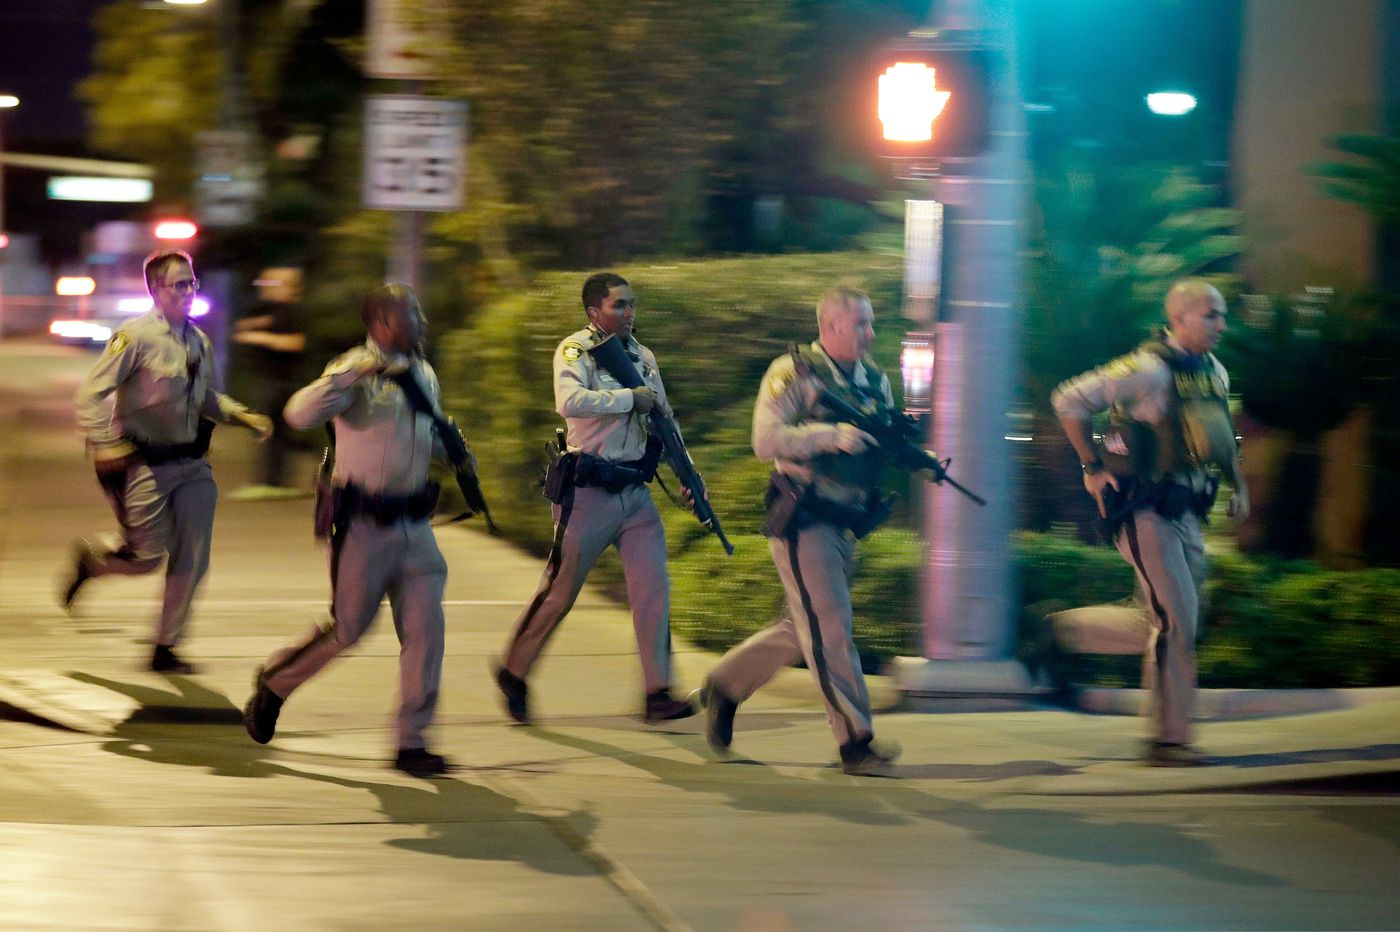 Police release officers' accounts of Las Vegas shooting